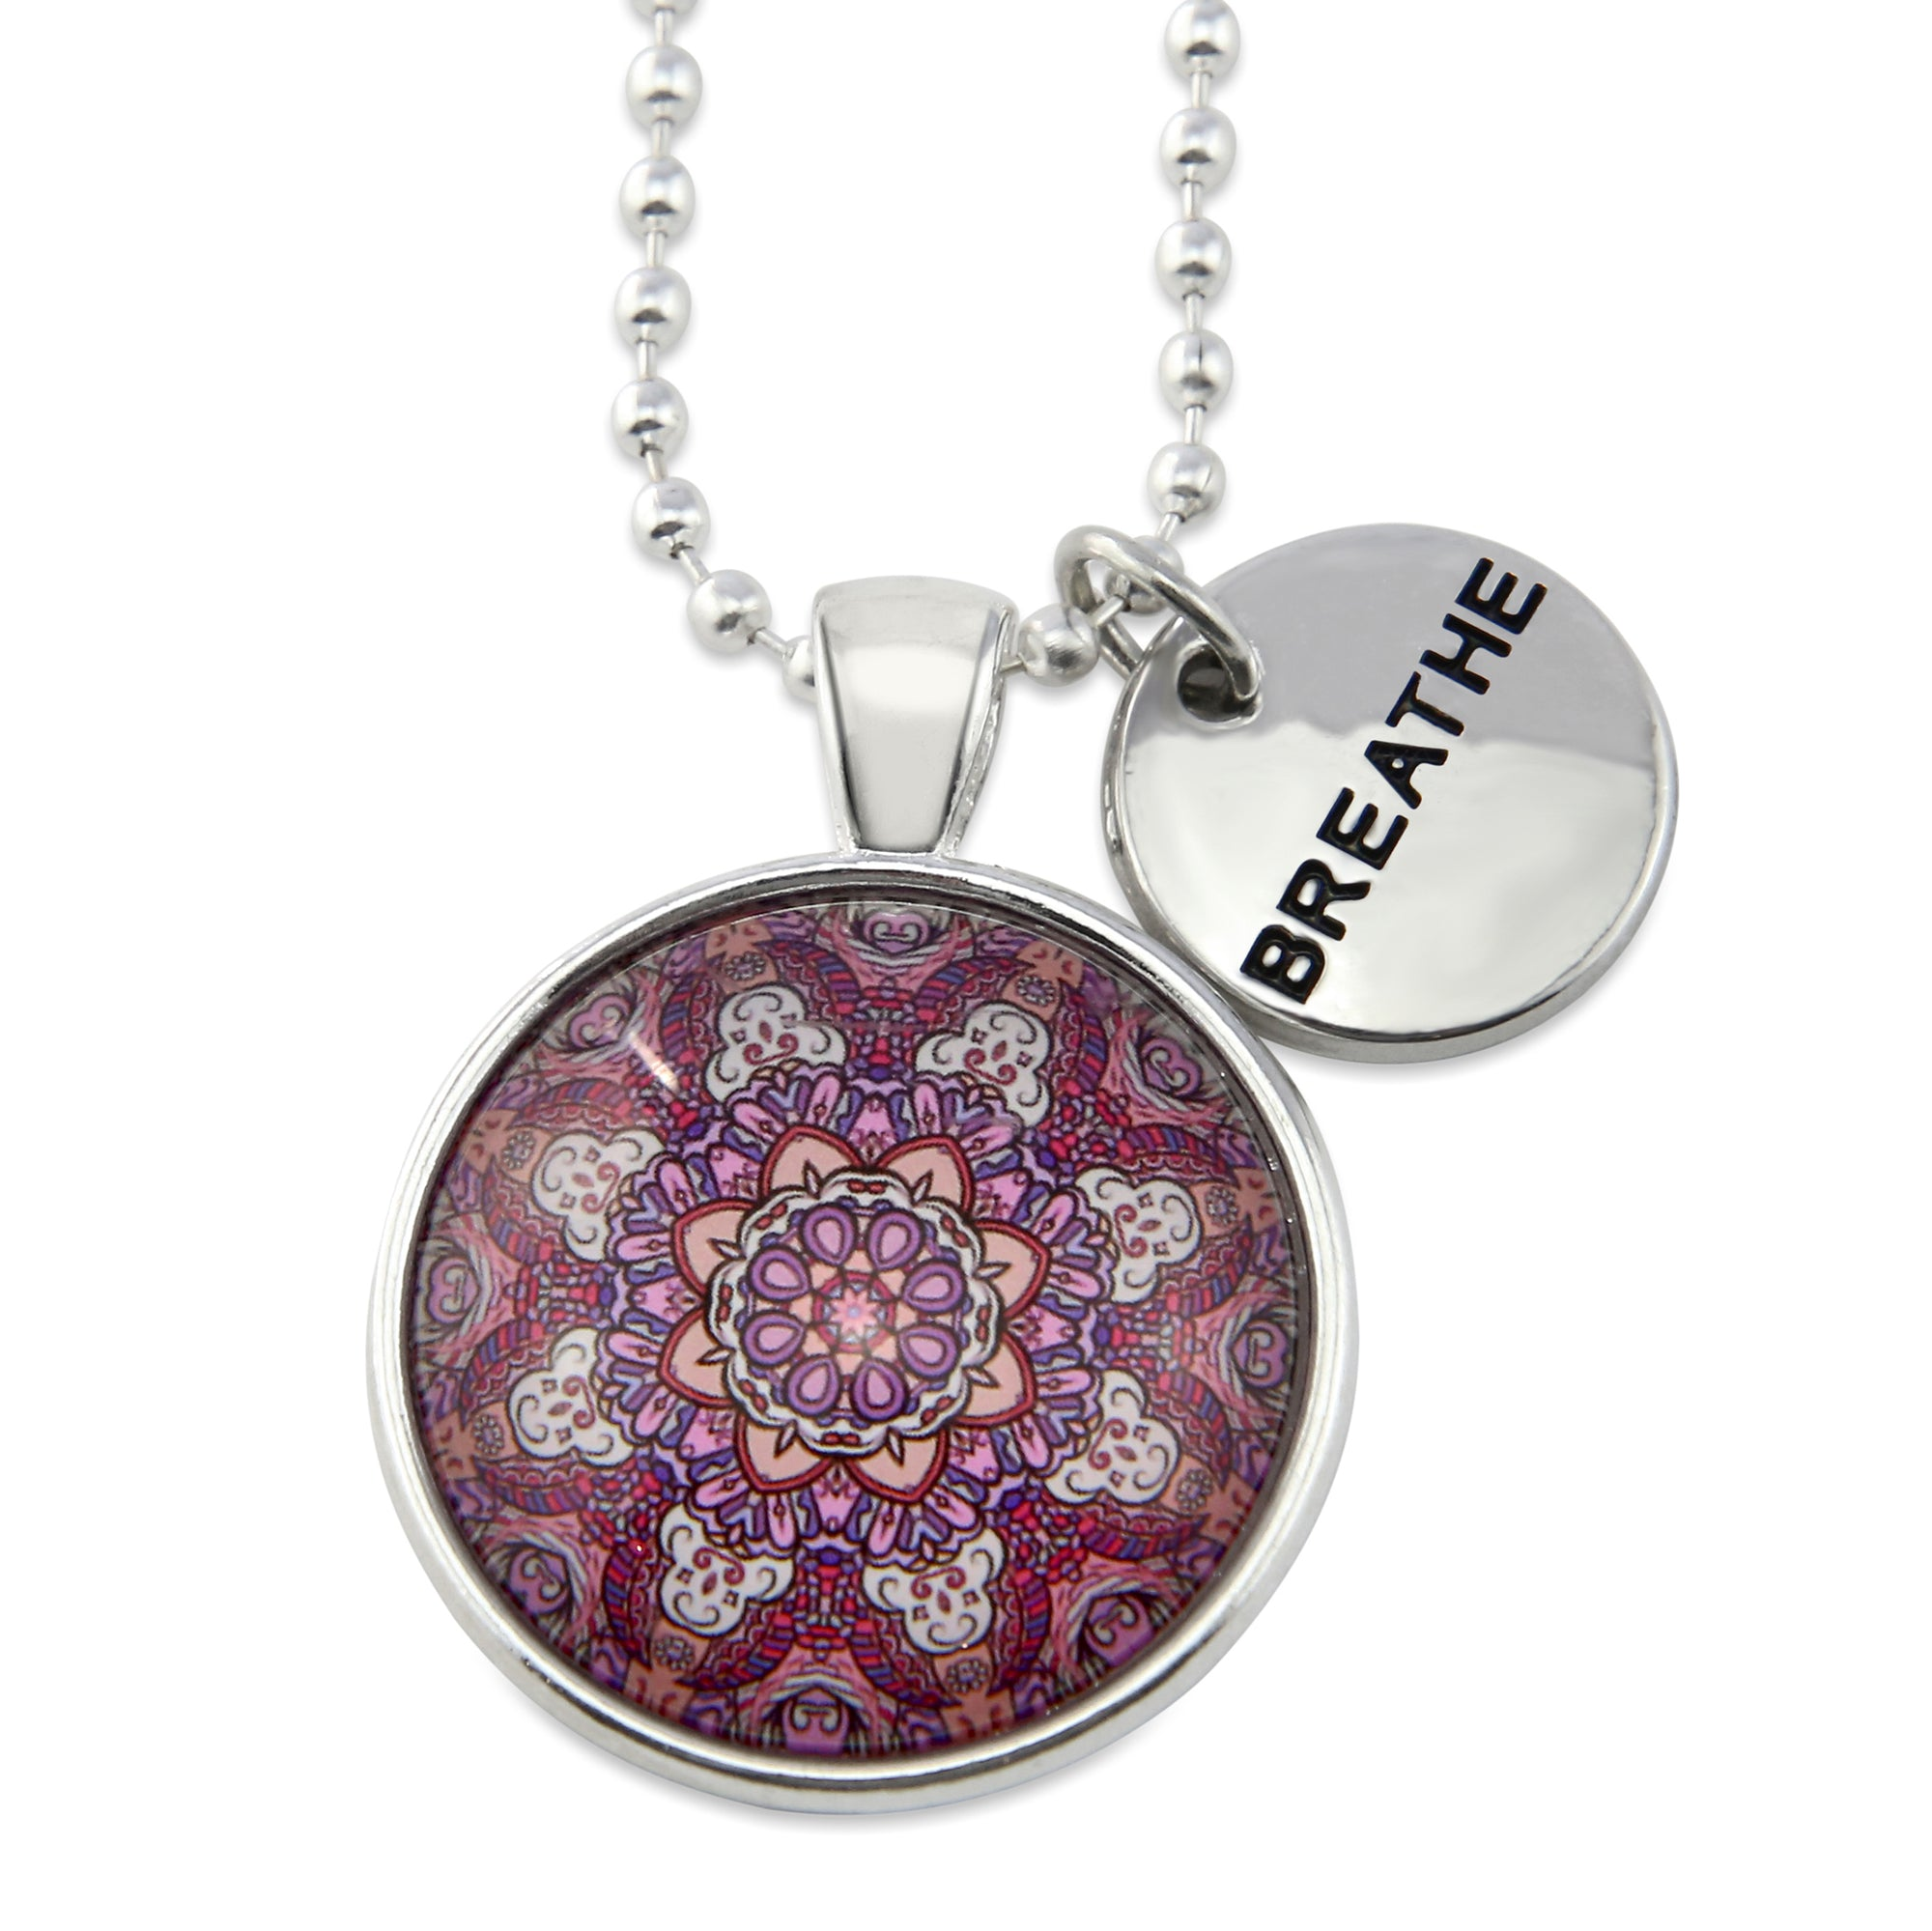 BOHO Collection - Bright Silver 'BREATHE' Necklace - Daybreak (10112-A)